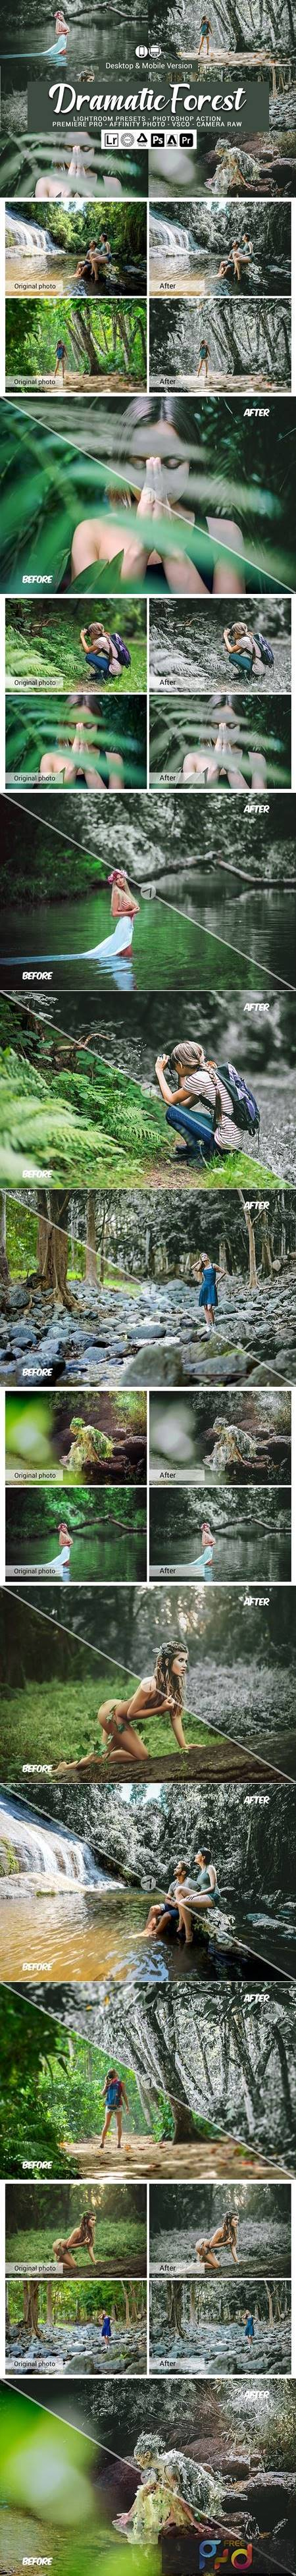 Dramatic Forest Presets 5689538 1